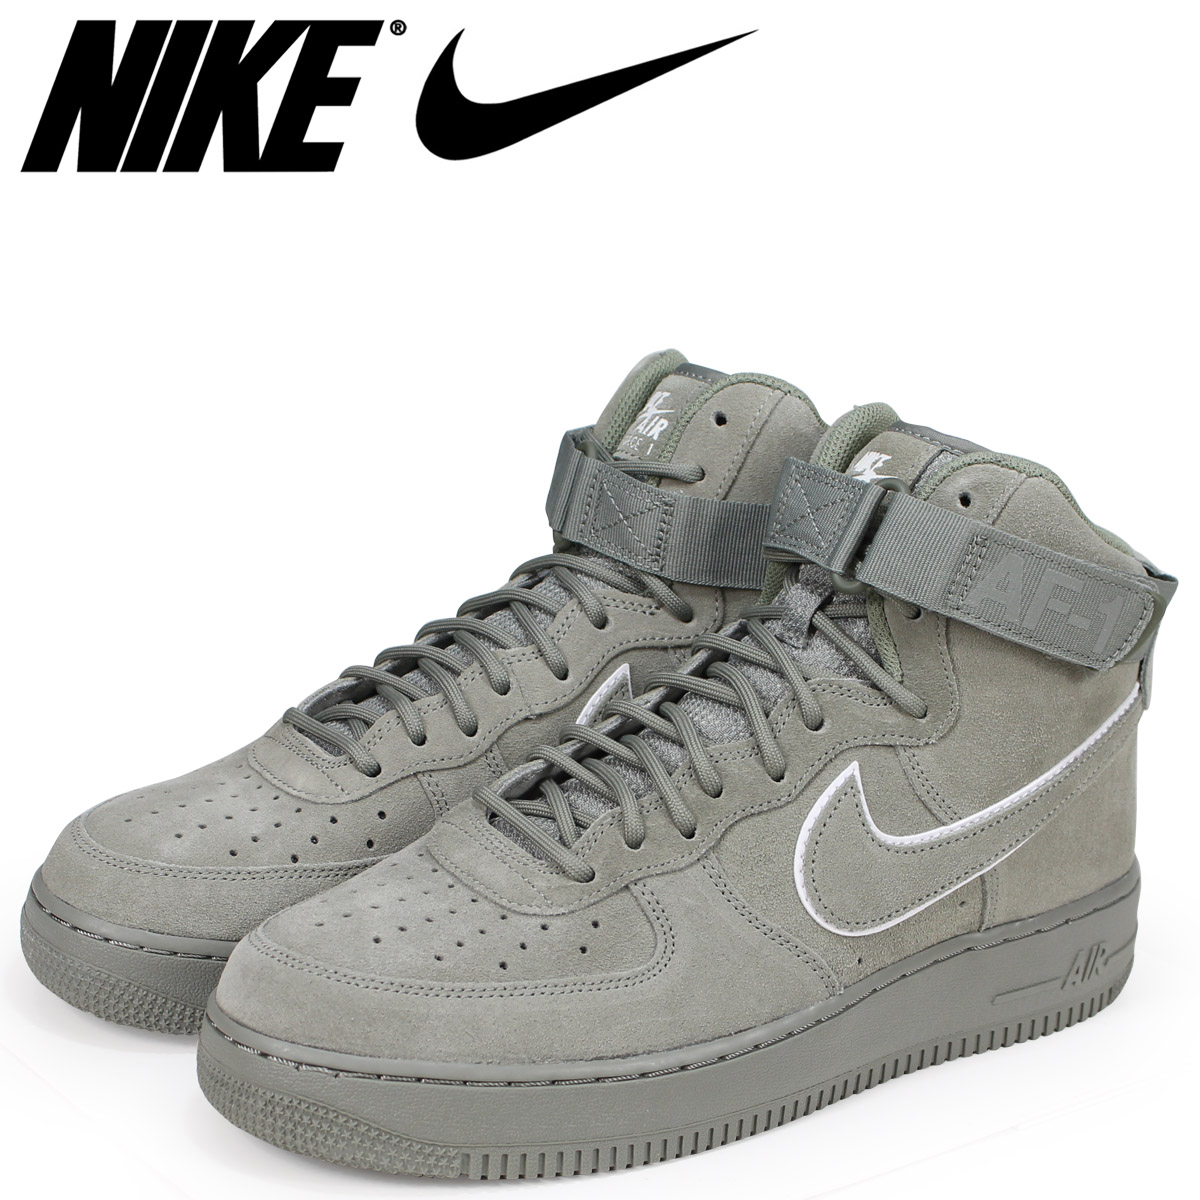 NIKE Nike air force 1 high 07 LV8 sneakers men AIR FORCE 1 HIGH AA1118 002 green